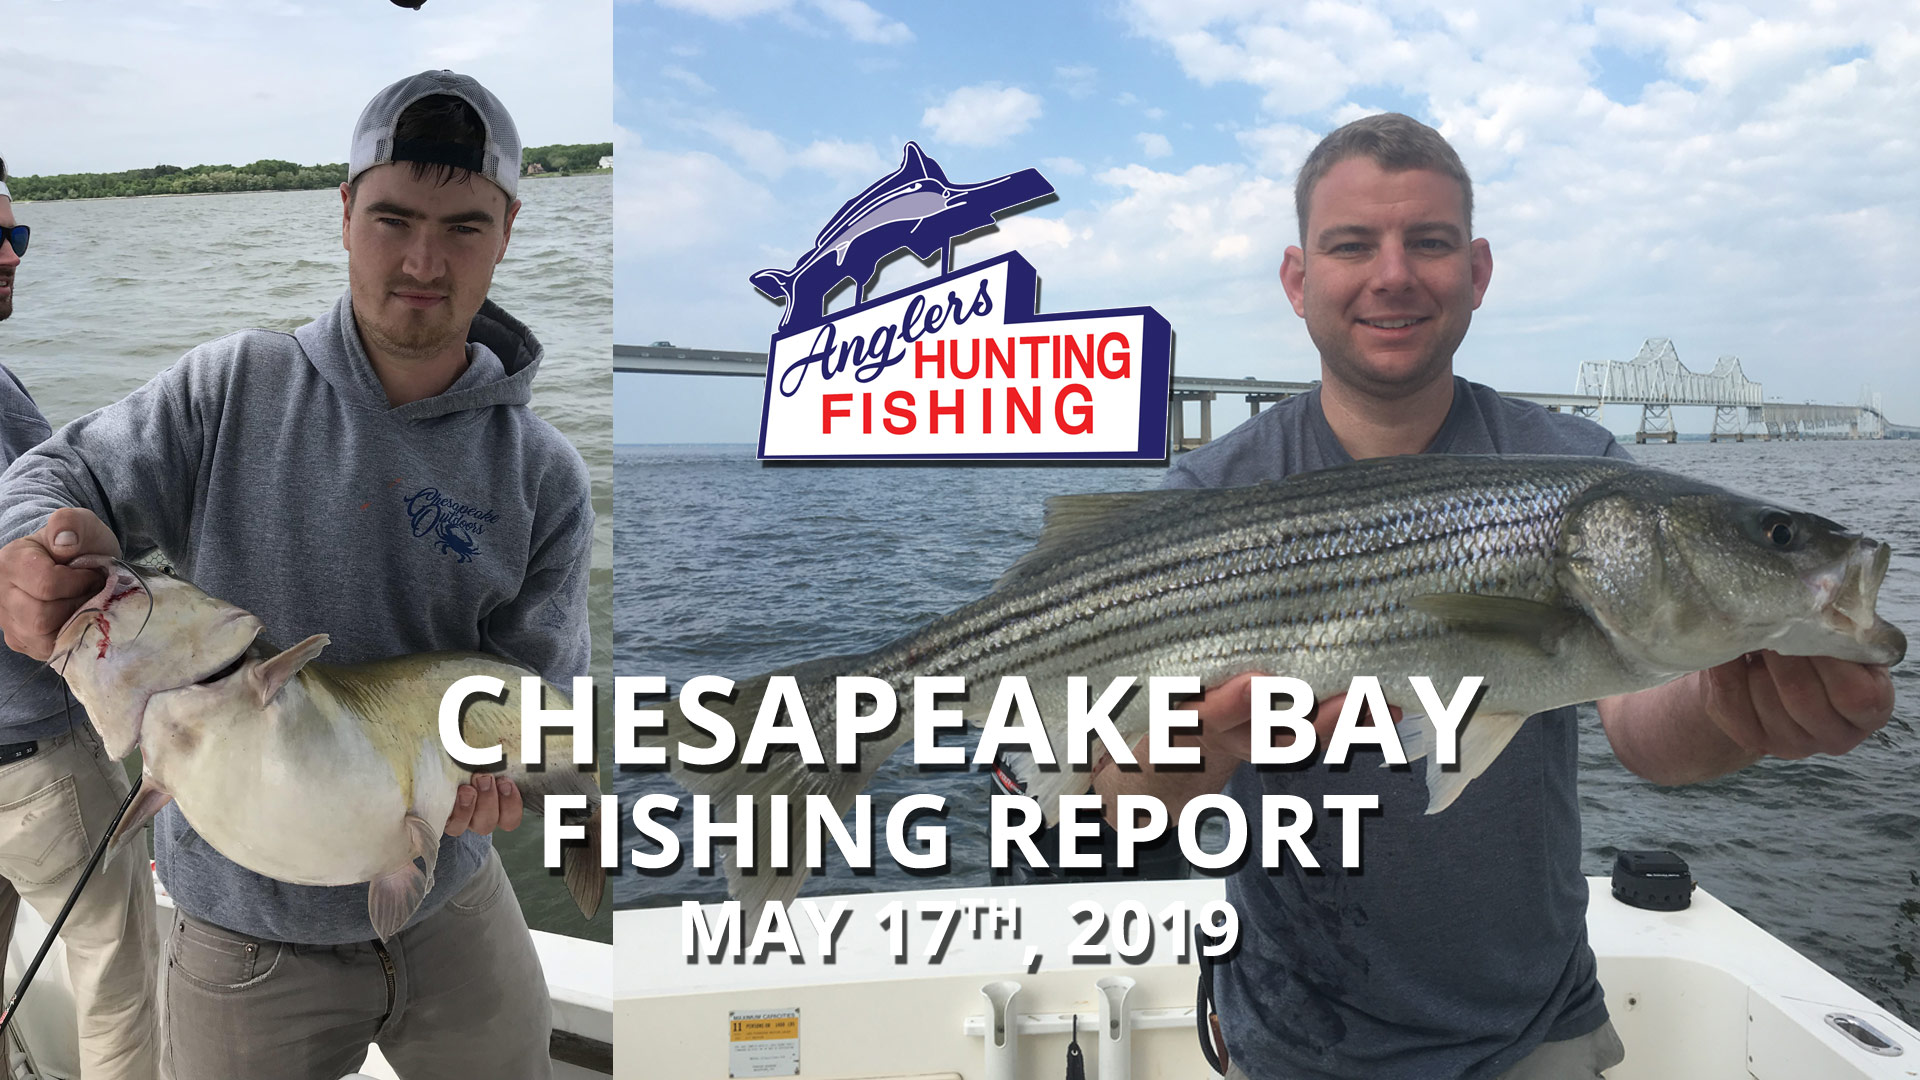 Chesapeake Bay Fishing Report - May 17th, 2019